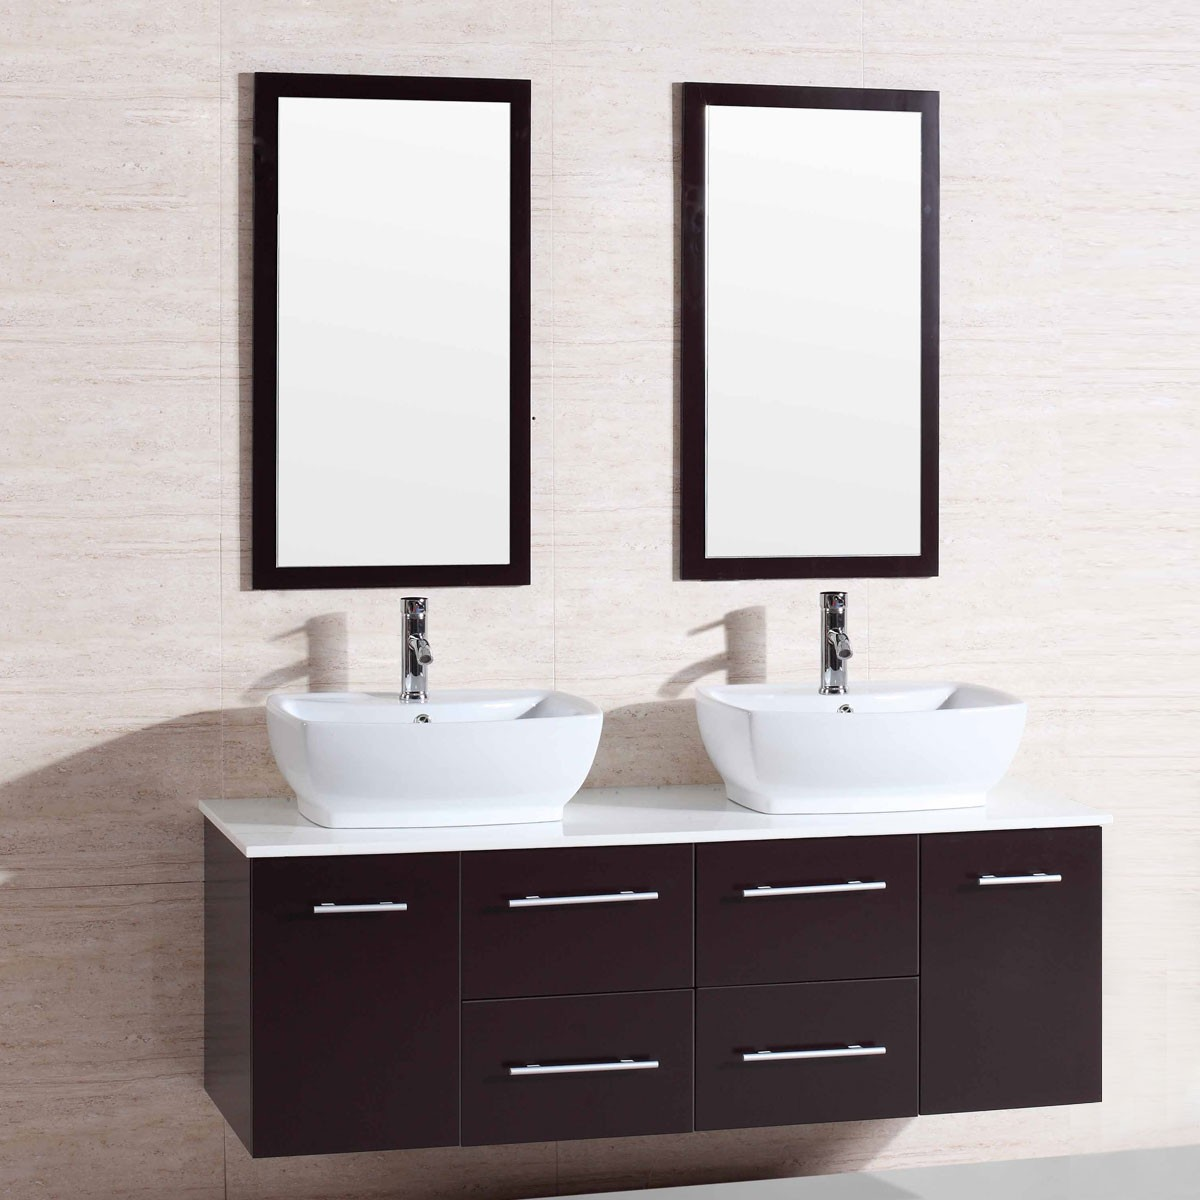 60 in wall mount bathroom vanity set with double sinks for Liquidation meuble lavabo